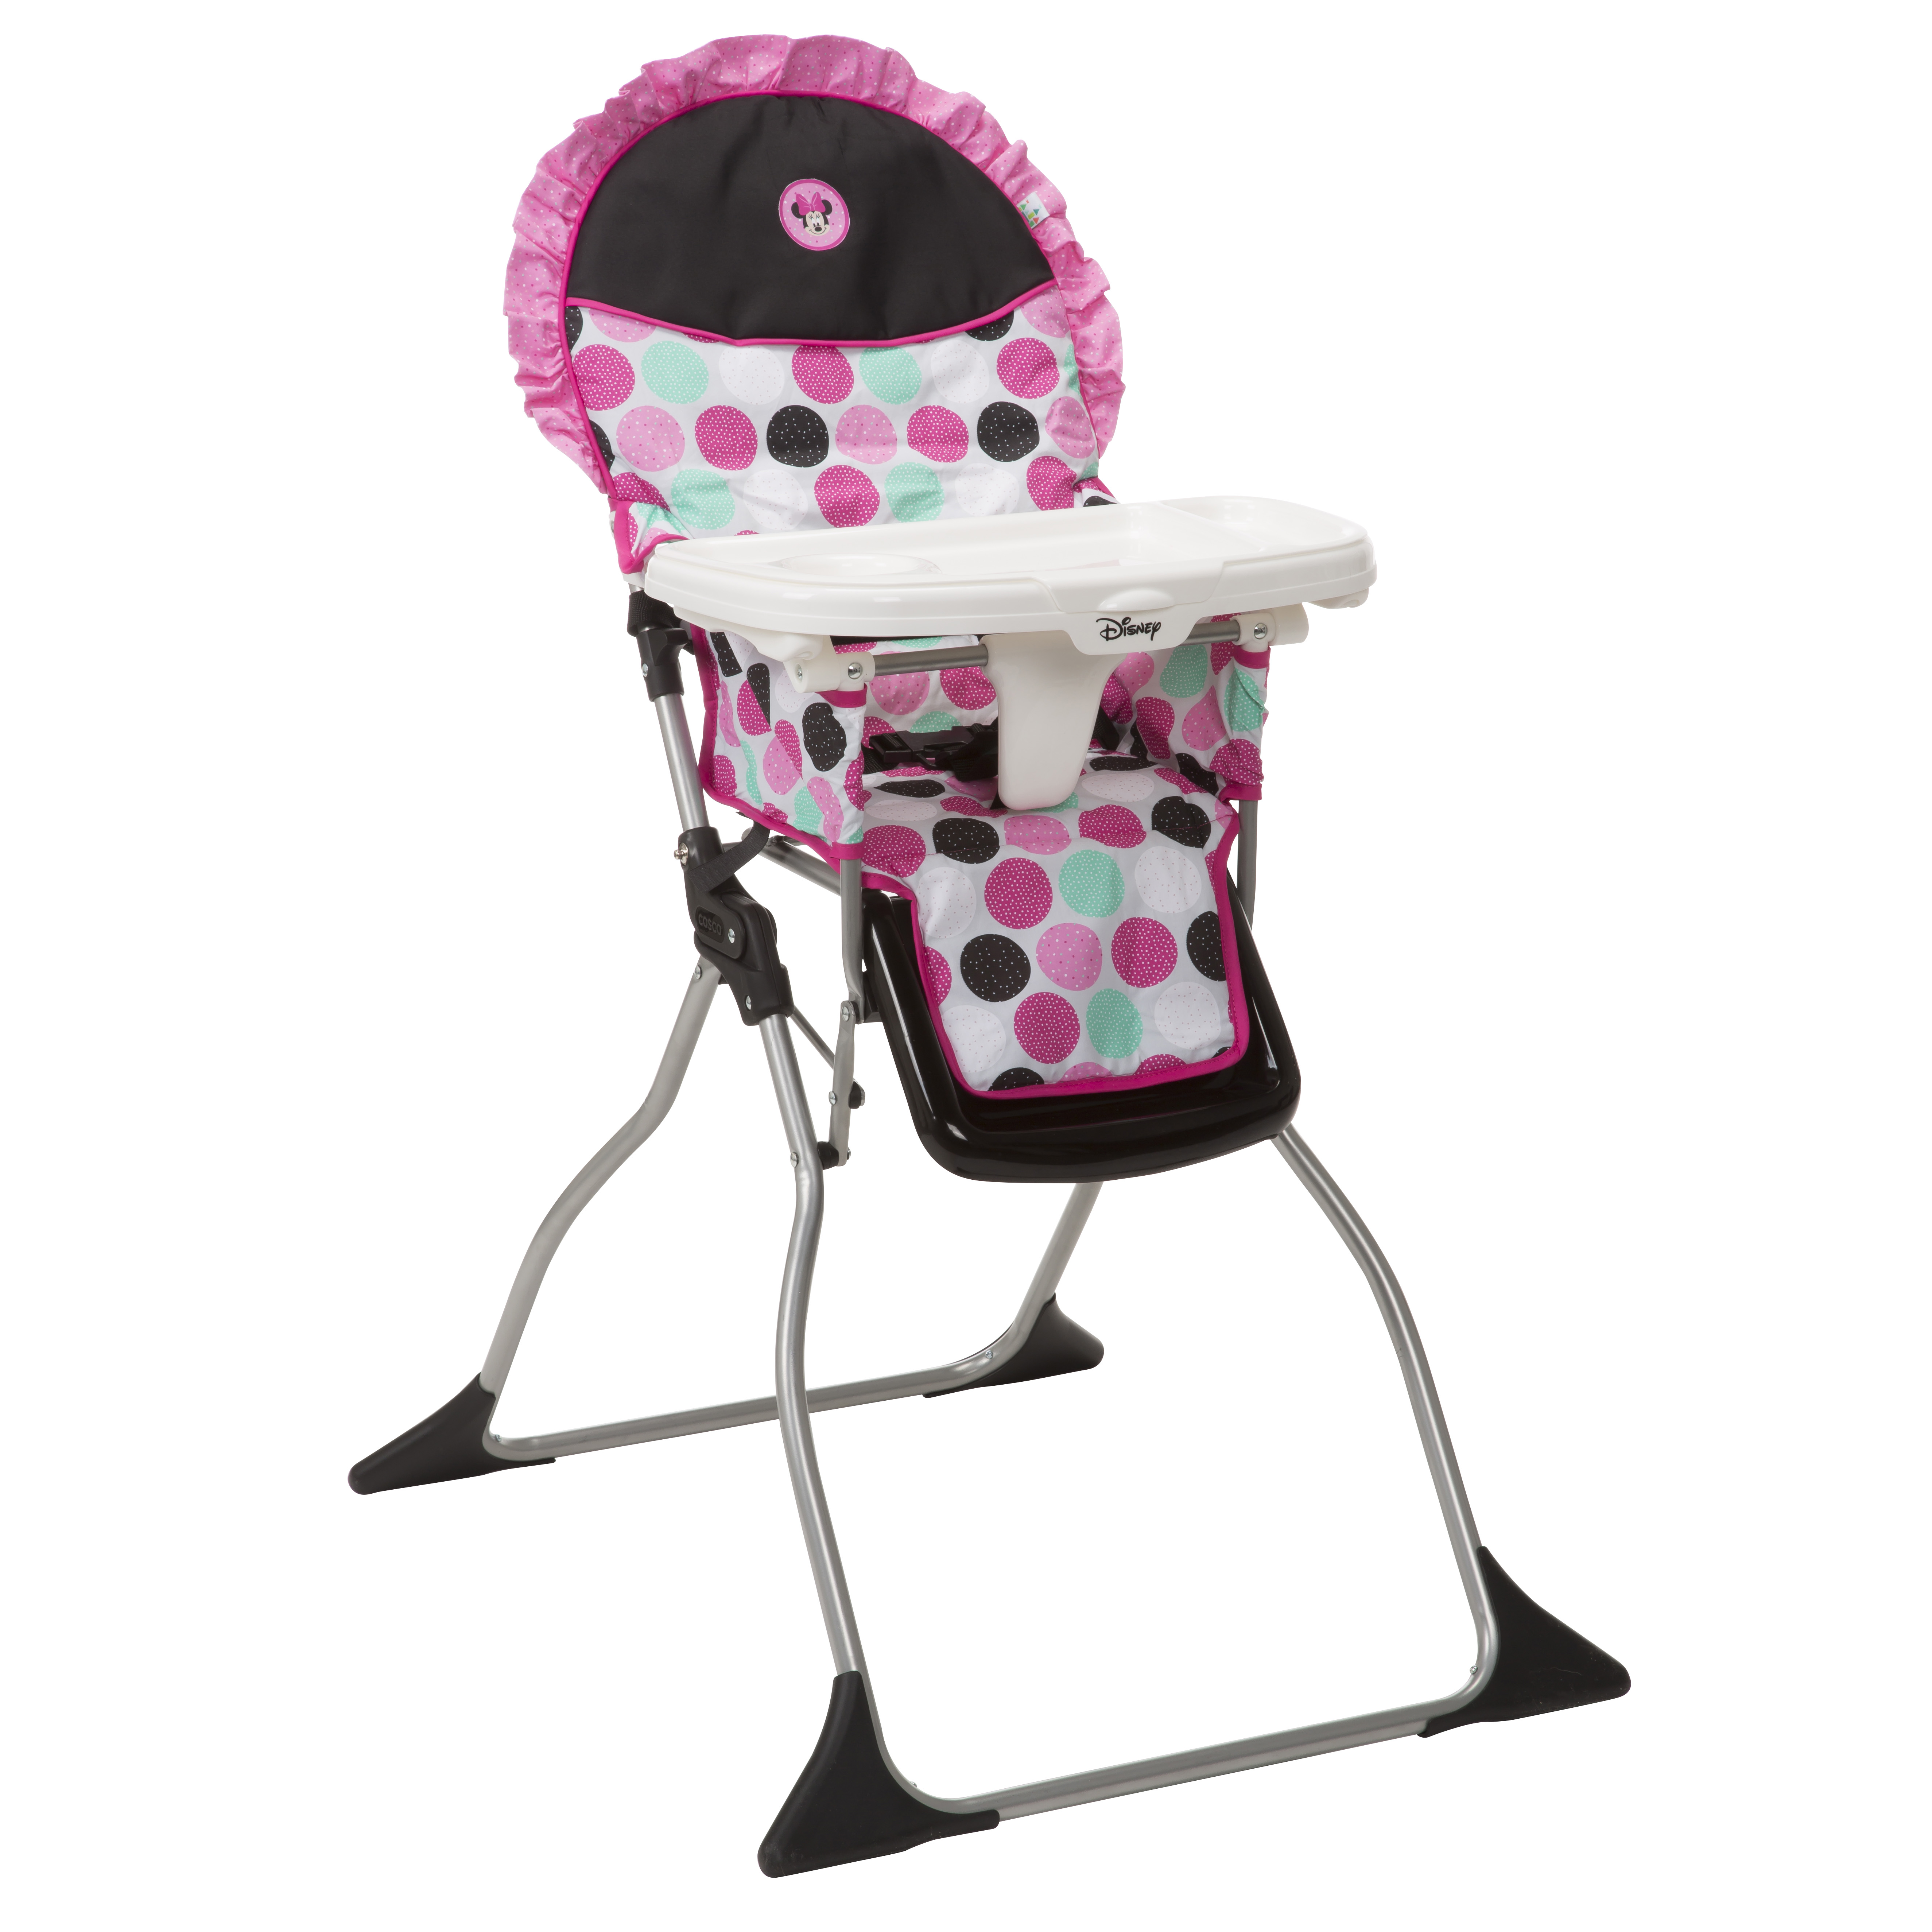 Beau Disney Baby Simple Fold Plus High Chair, Minnie Mash Up   Walmart.com